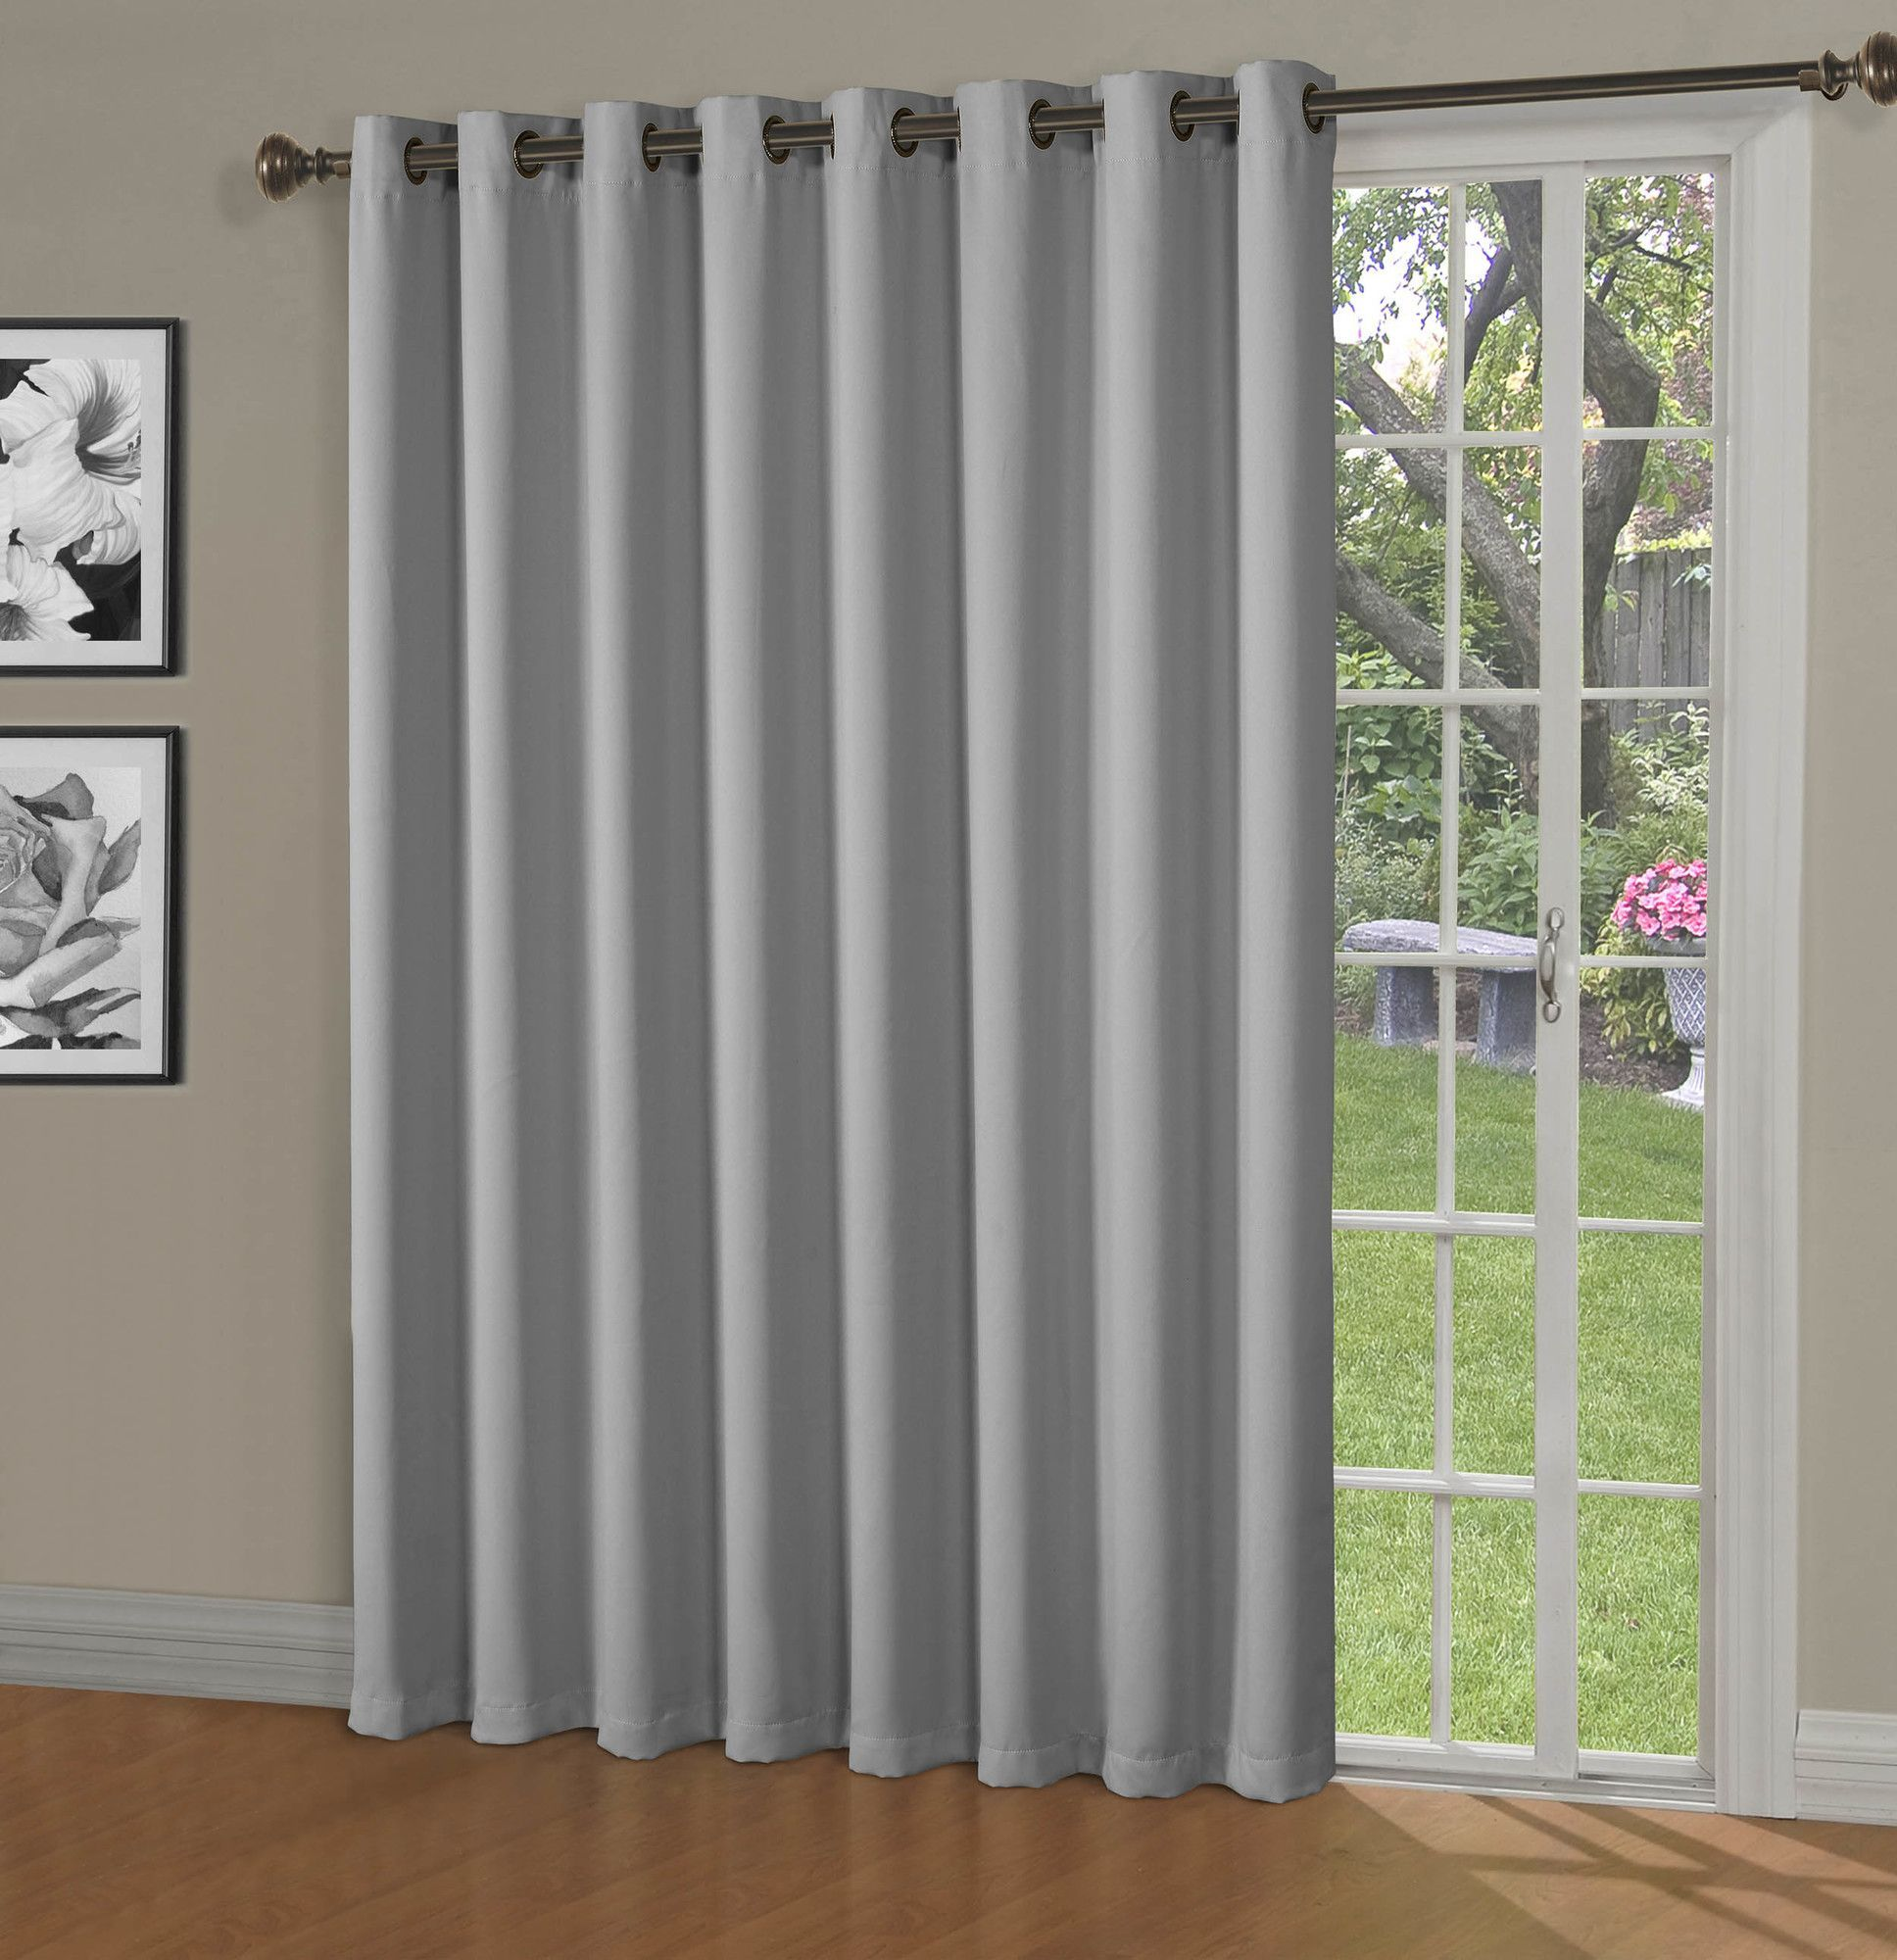 Thermal Patio Door Curtains With Grommets Maya Blackout Thermal Patio Door Extra Wide Grommet Curtain Panel